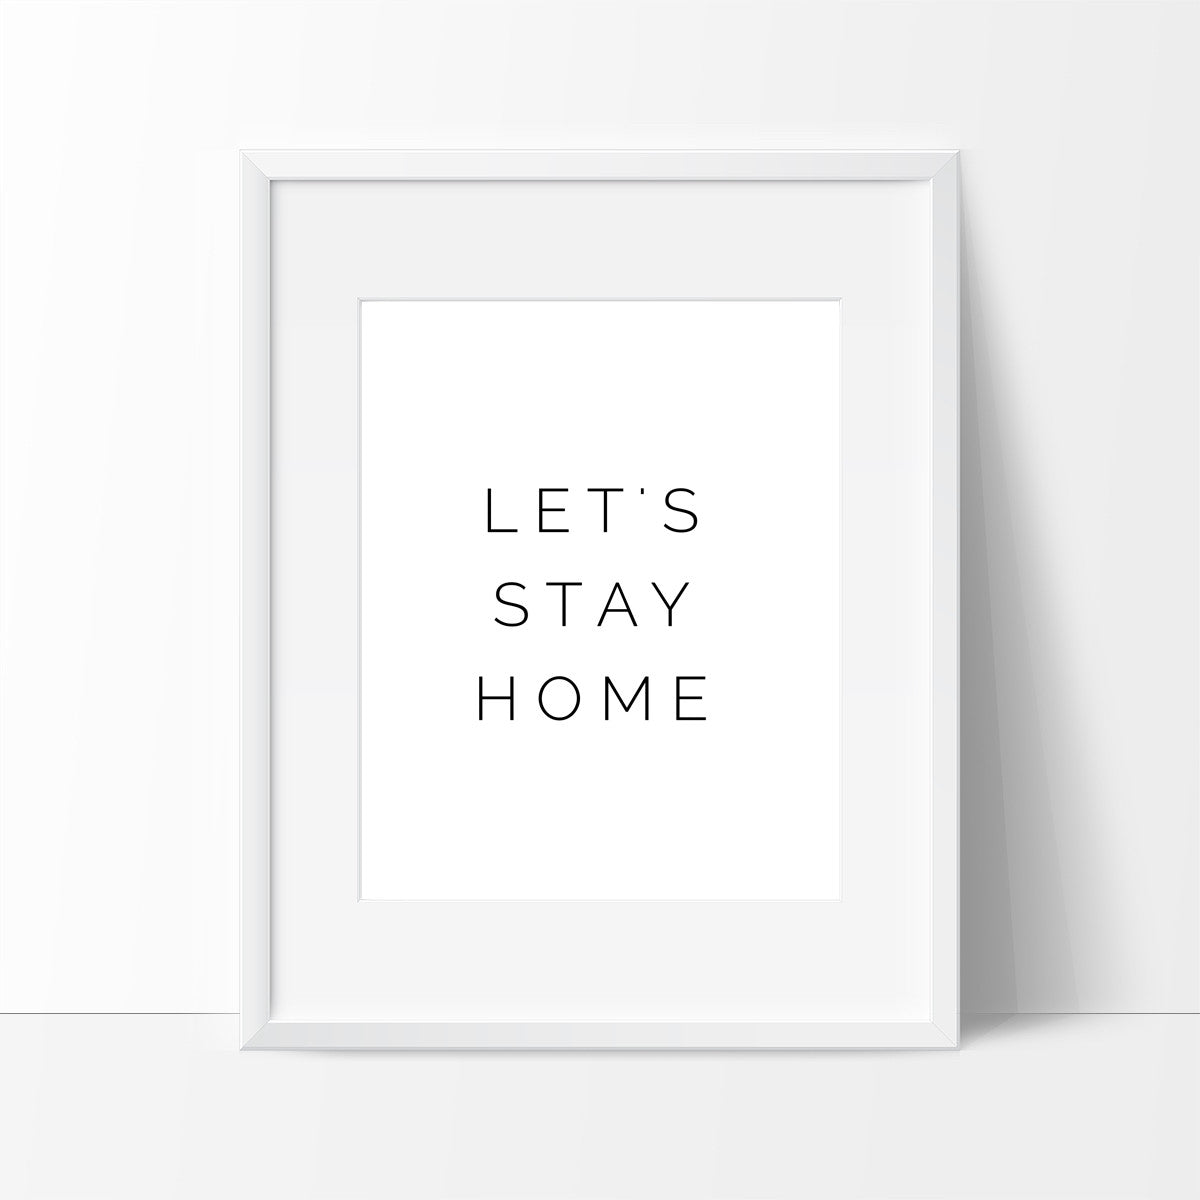 Let's Stay Home Black and White, Wall Decor Ideas - Ink Print Art